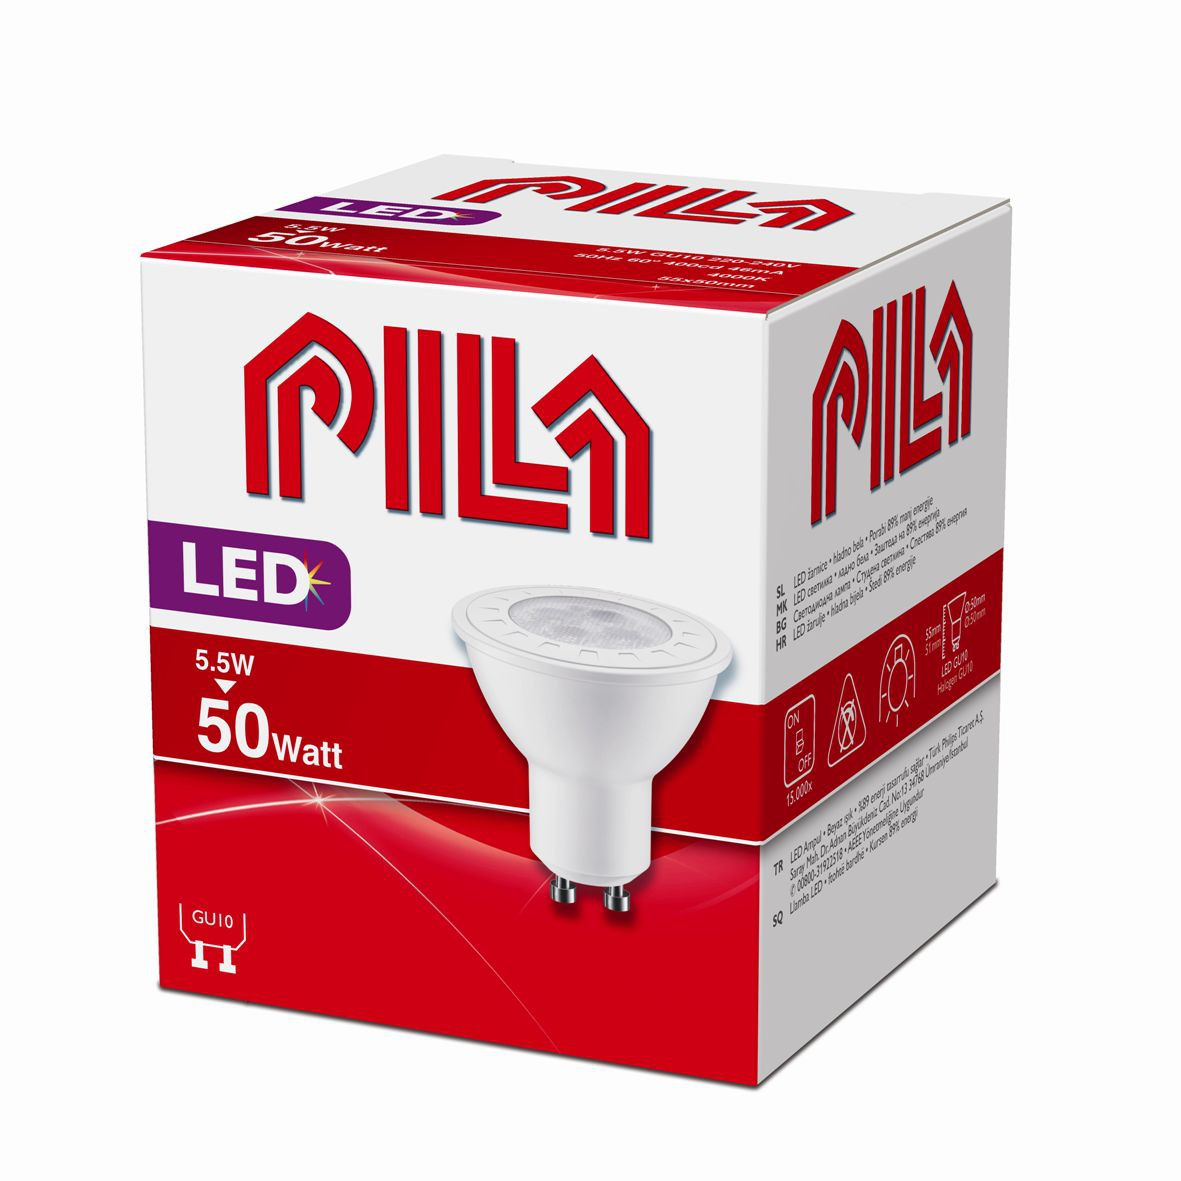 LED žárovka úsporná Philips 5,5W -> 50W GU10 - PILA LED SPOT MV 50W GU10 840 60D ND